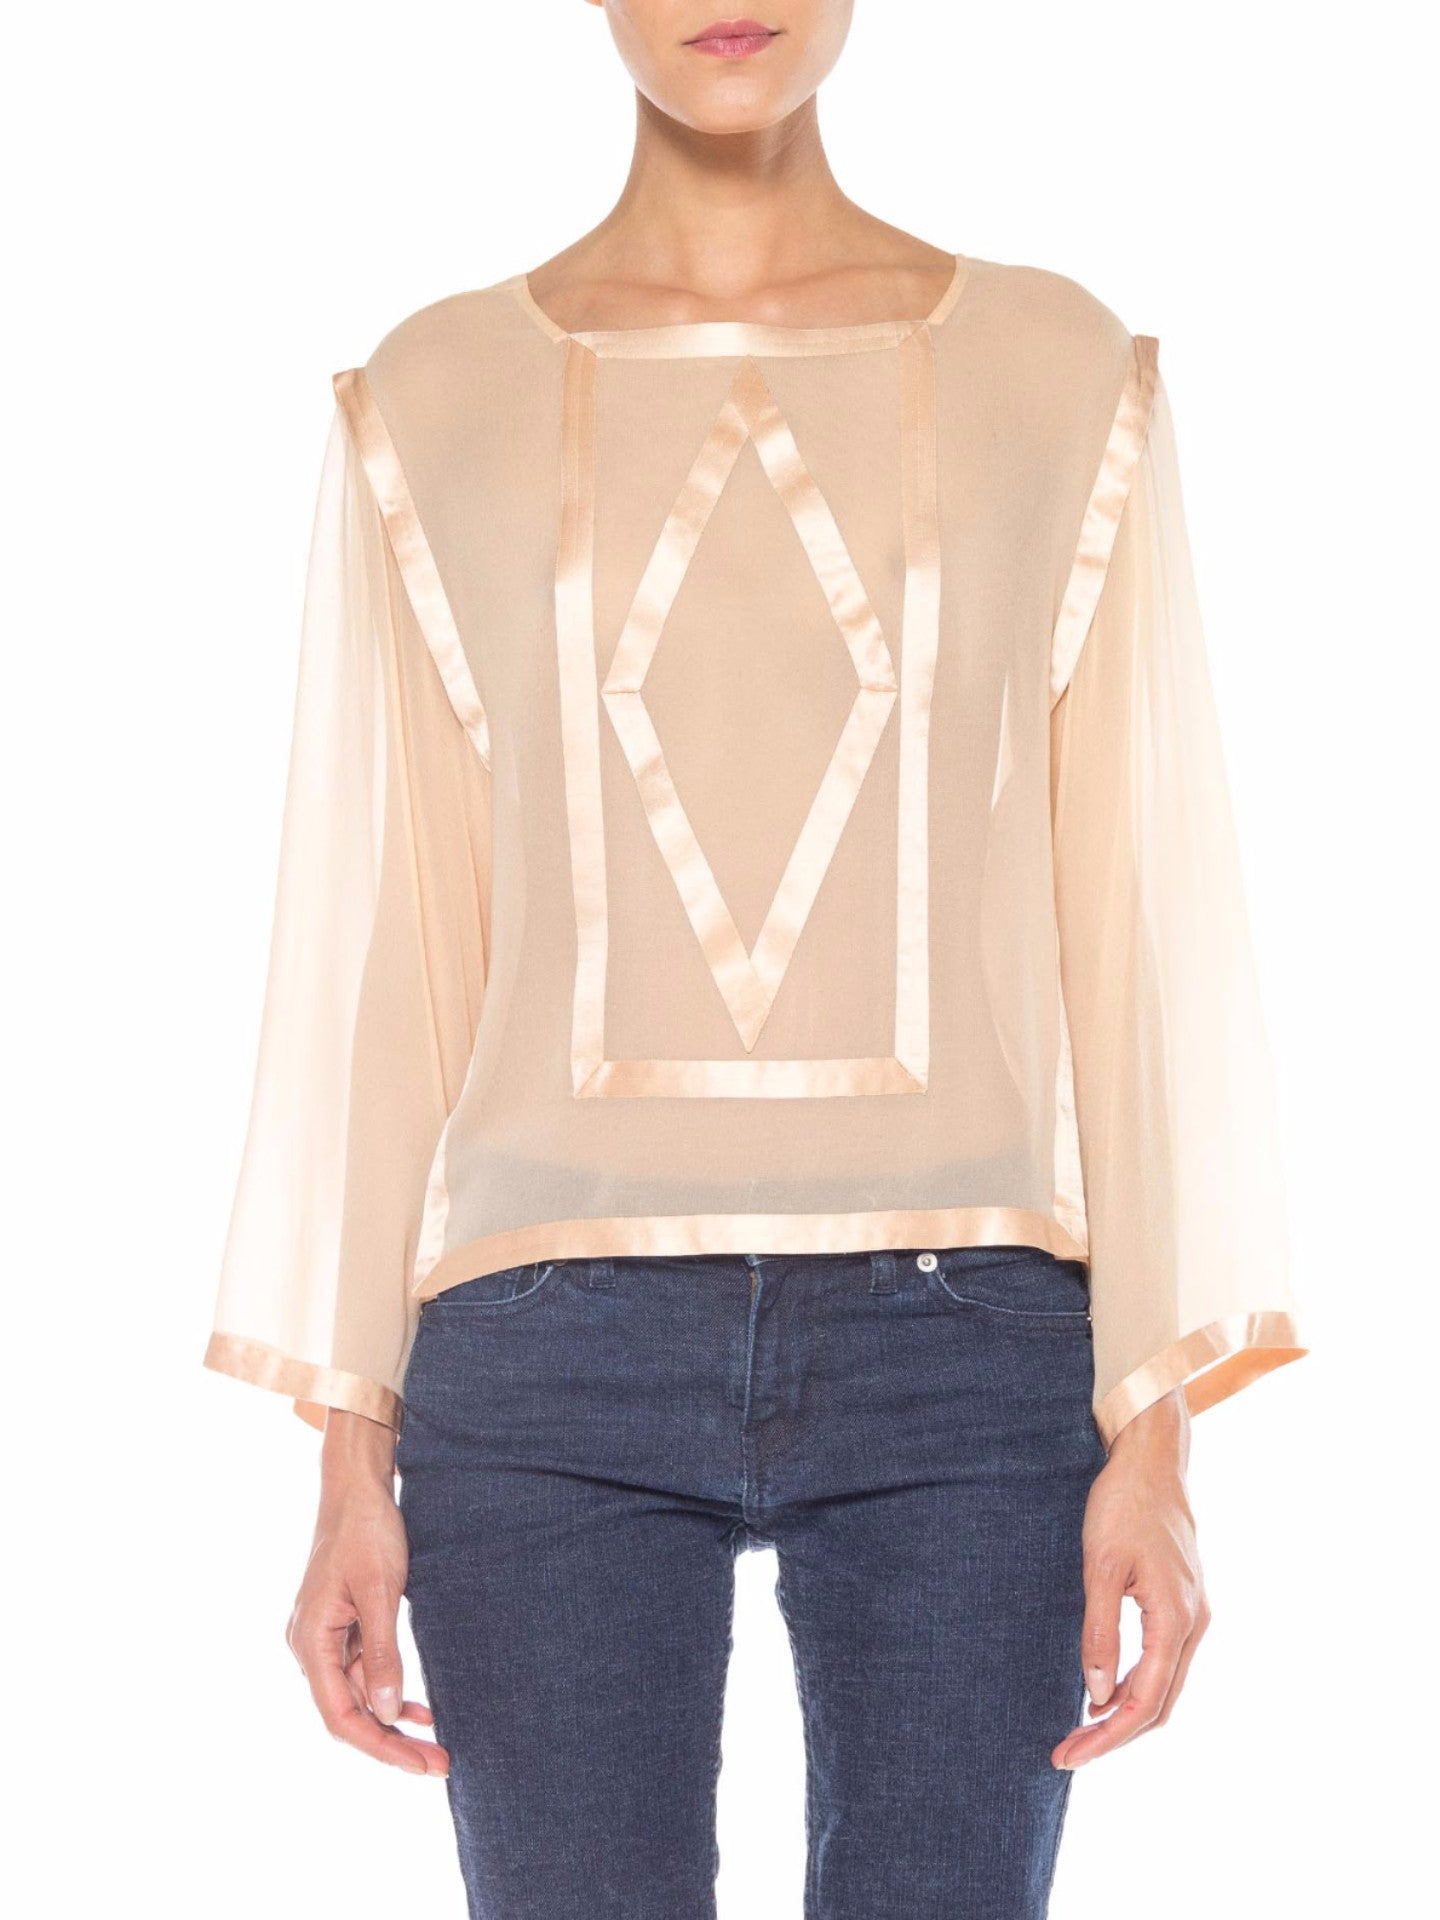 1970s Chiffon and Satin Geometric Top